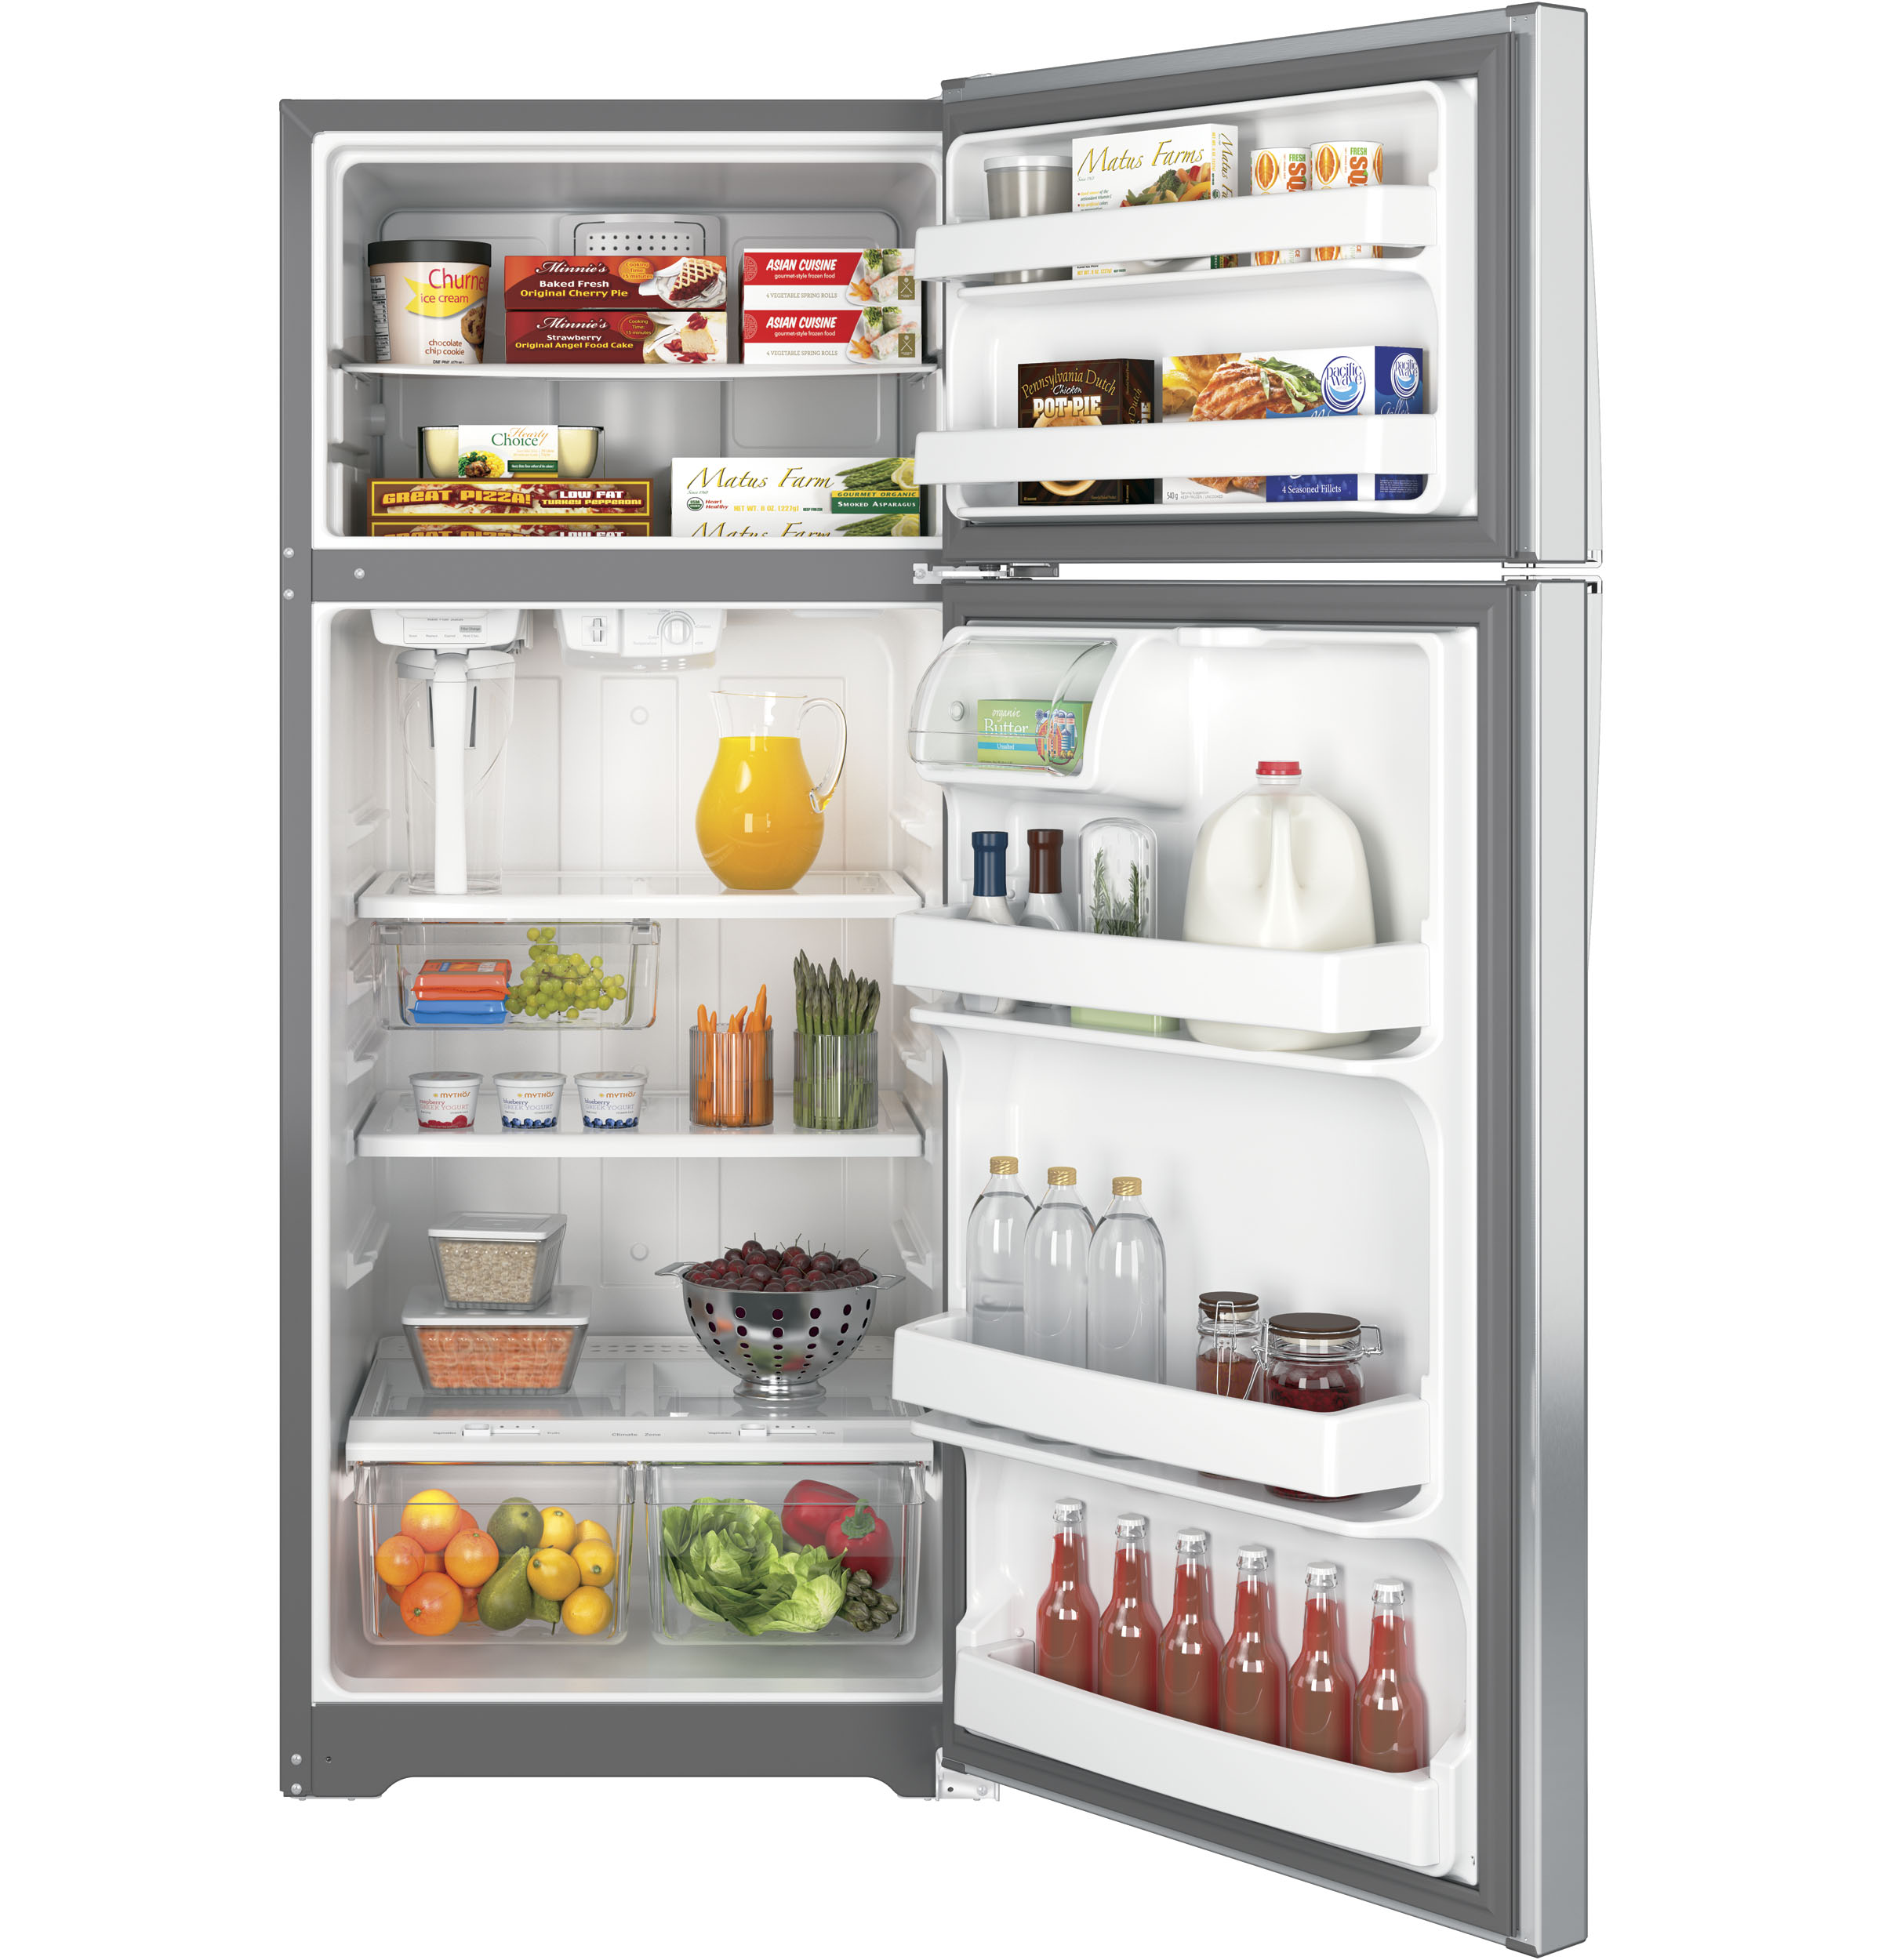 Ge S New Autofill Pitcher Refrigerators Are Filled To The